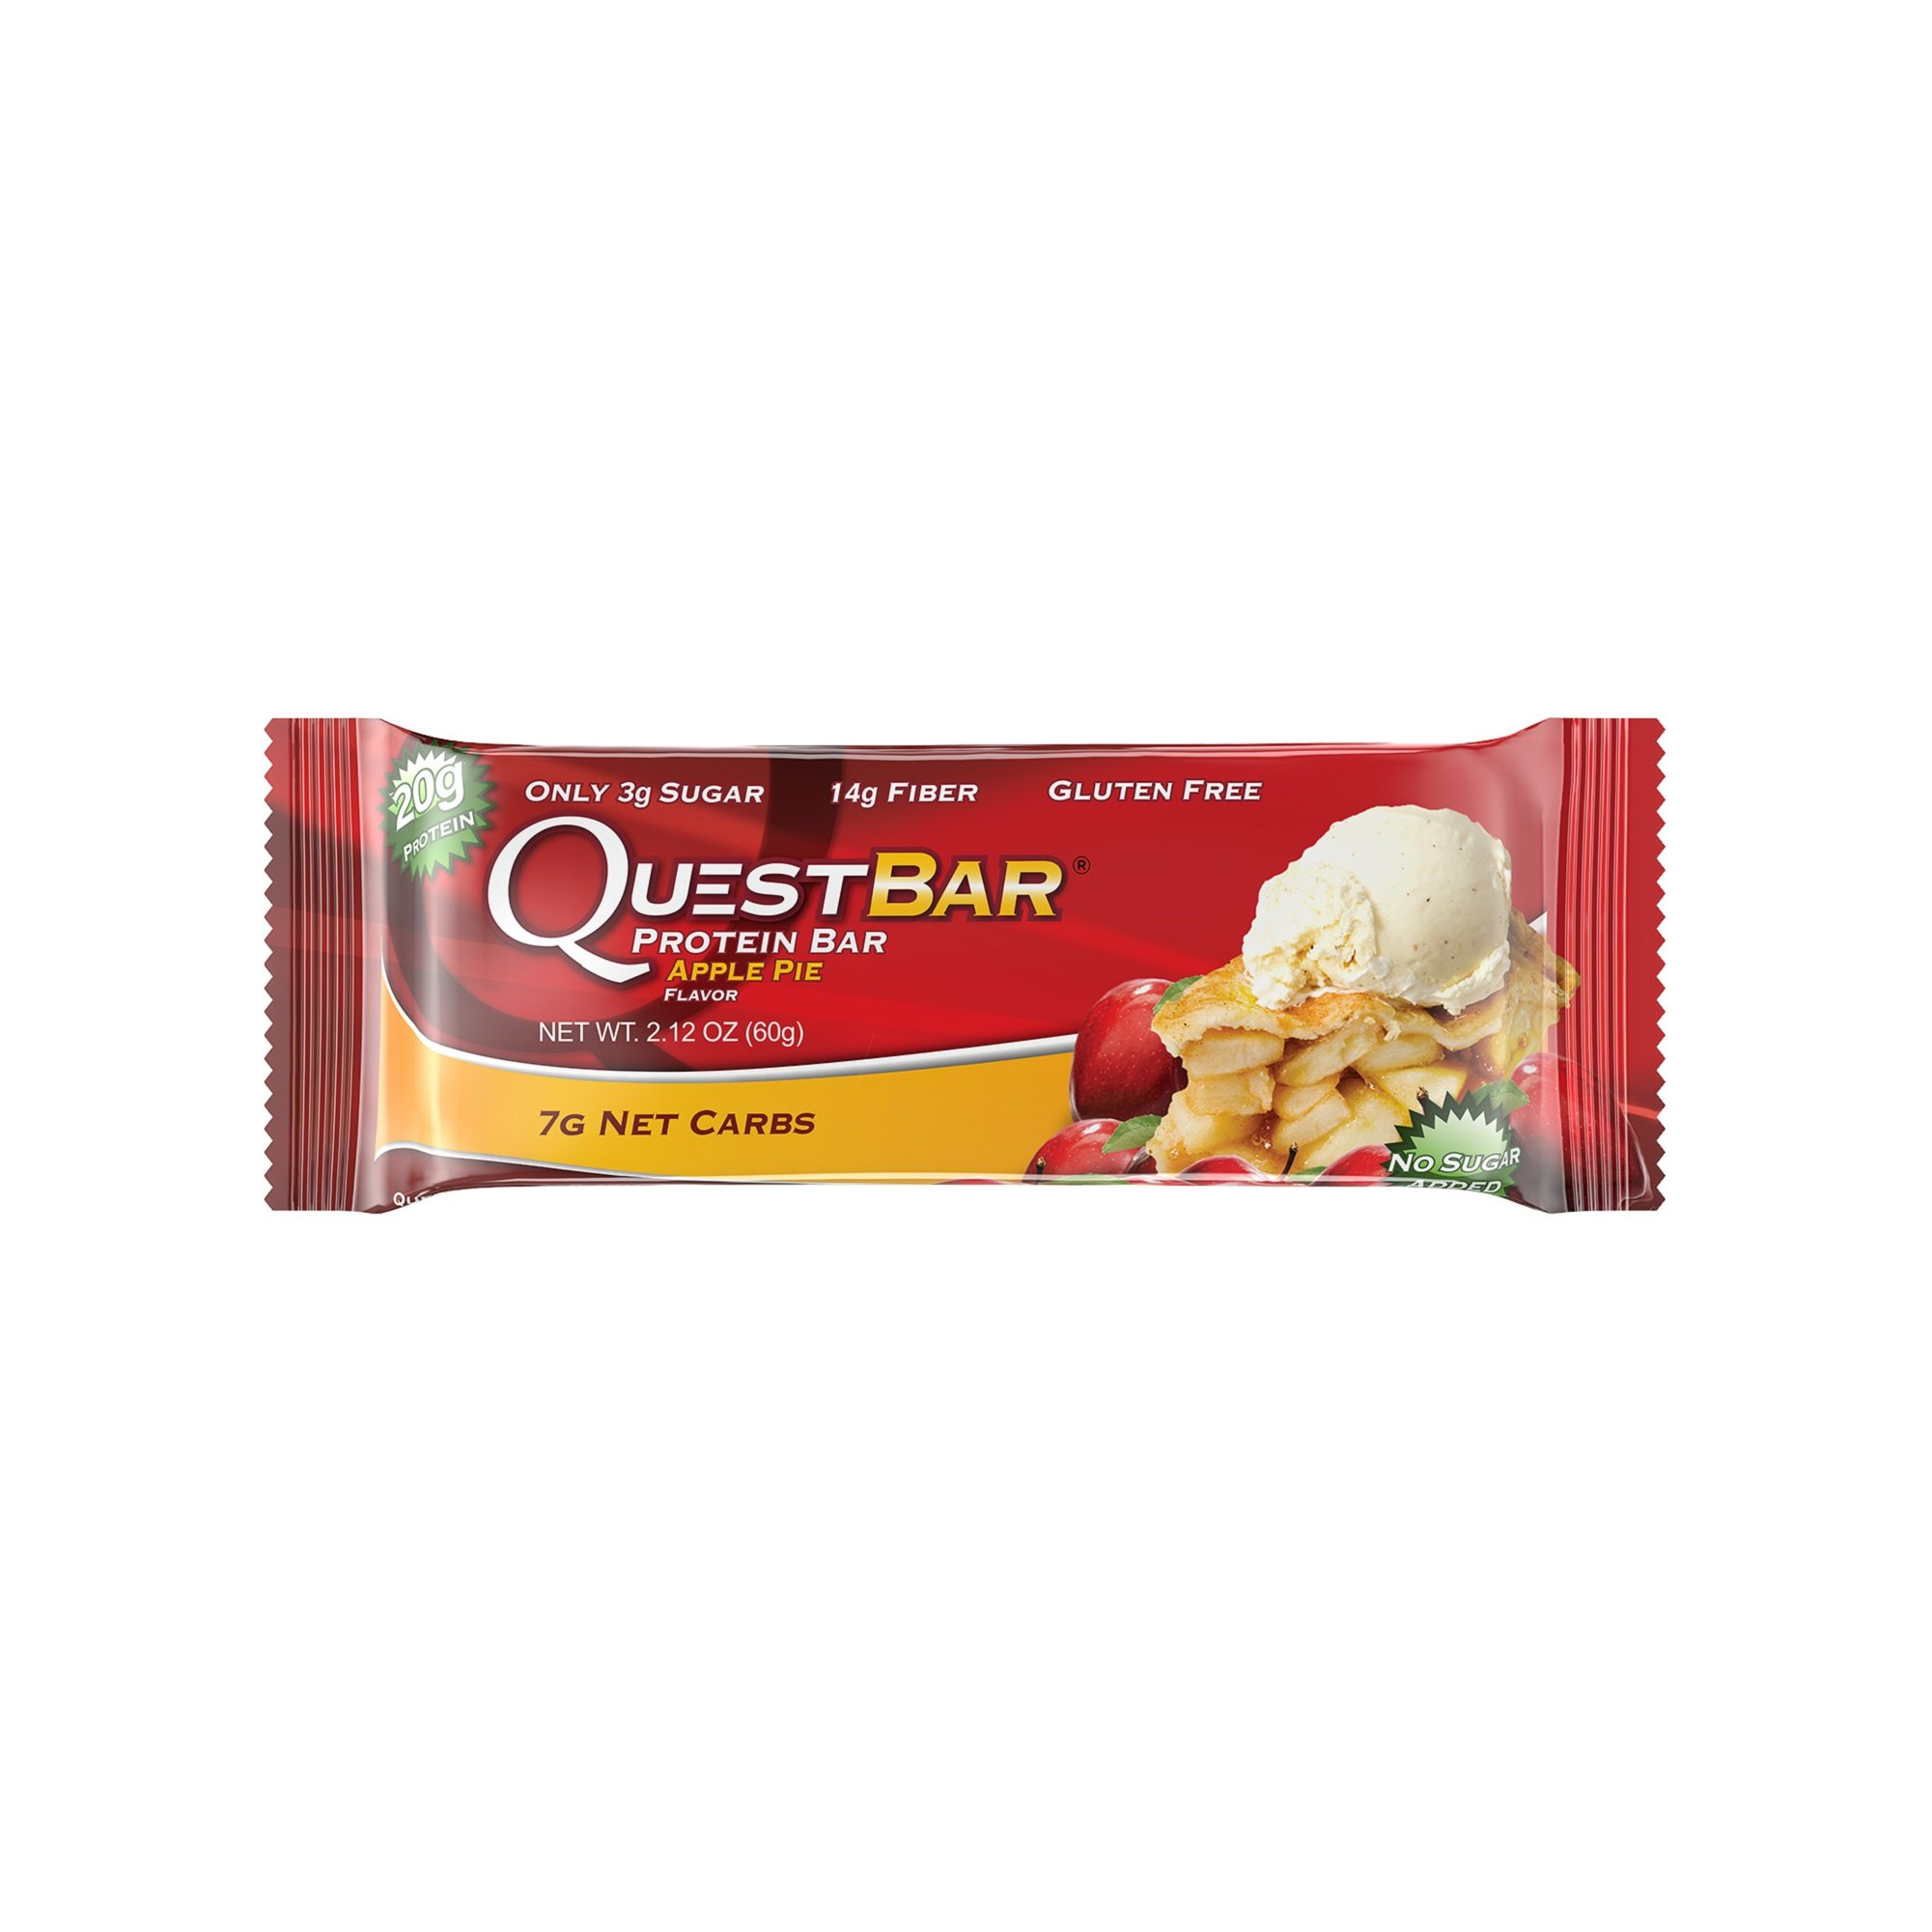 Quest Nutrition Protein Bar, Apple Pie, 20g Protein, 6g Net Carbs, 190 Cals, High Protein Bars, Low Carb Bars, Gluten Free, Soy Free, 2.1 oz Bar, 12 Count